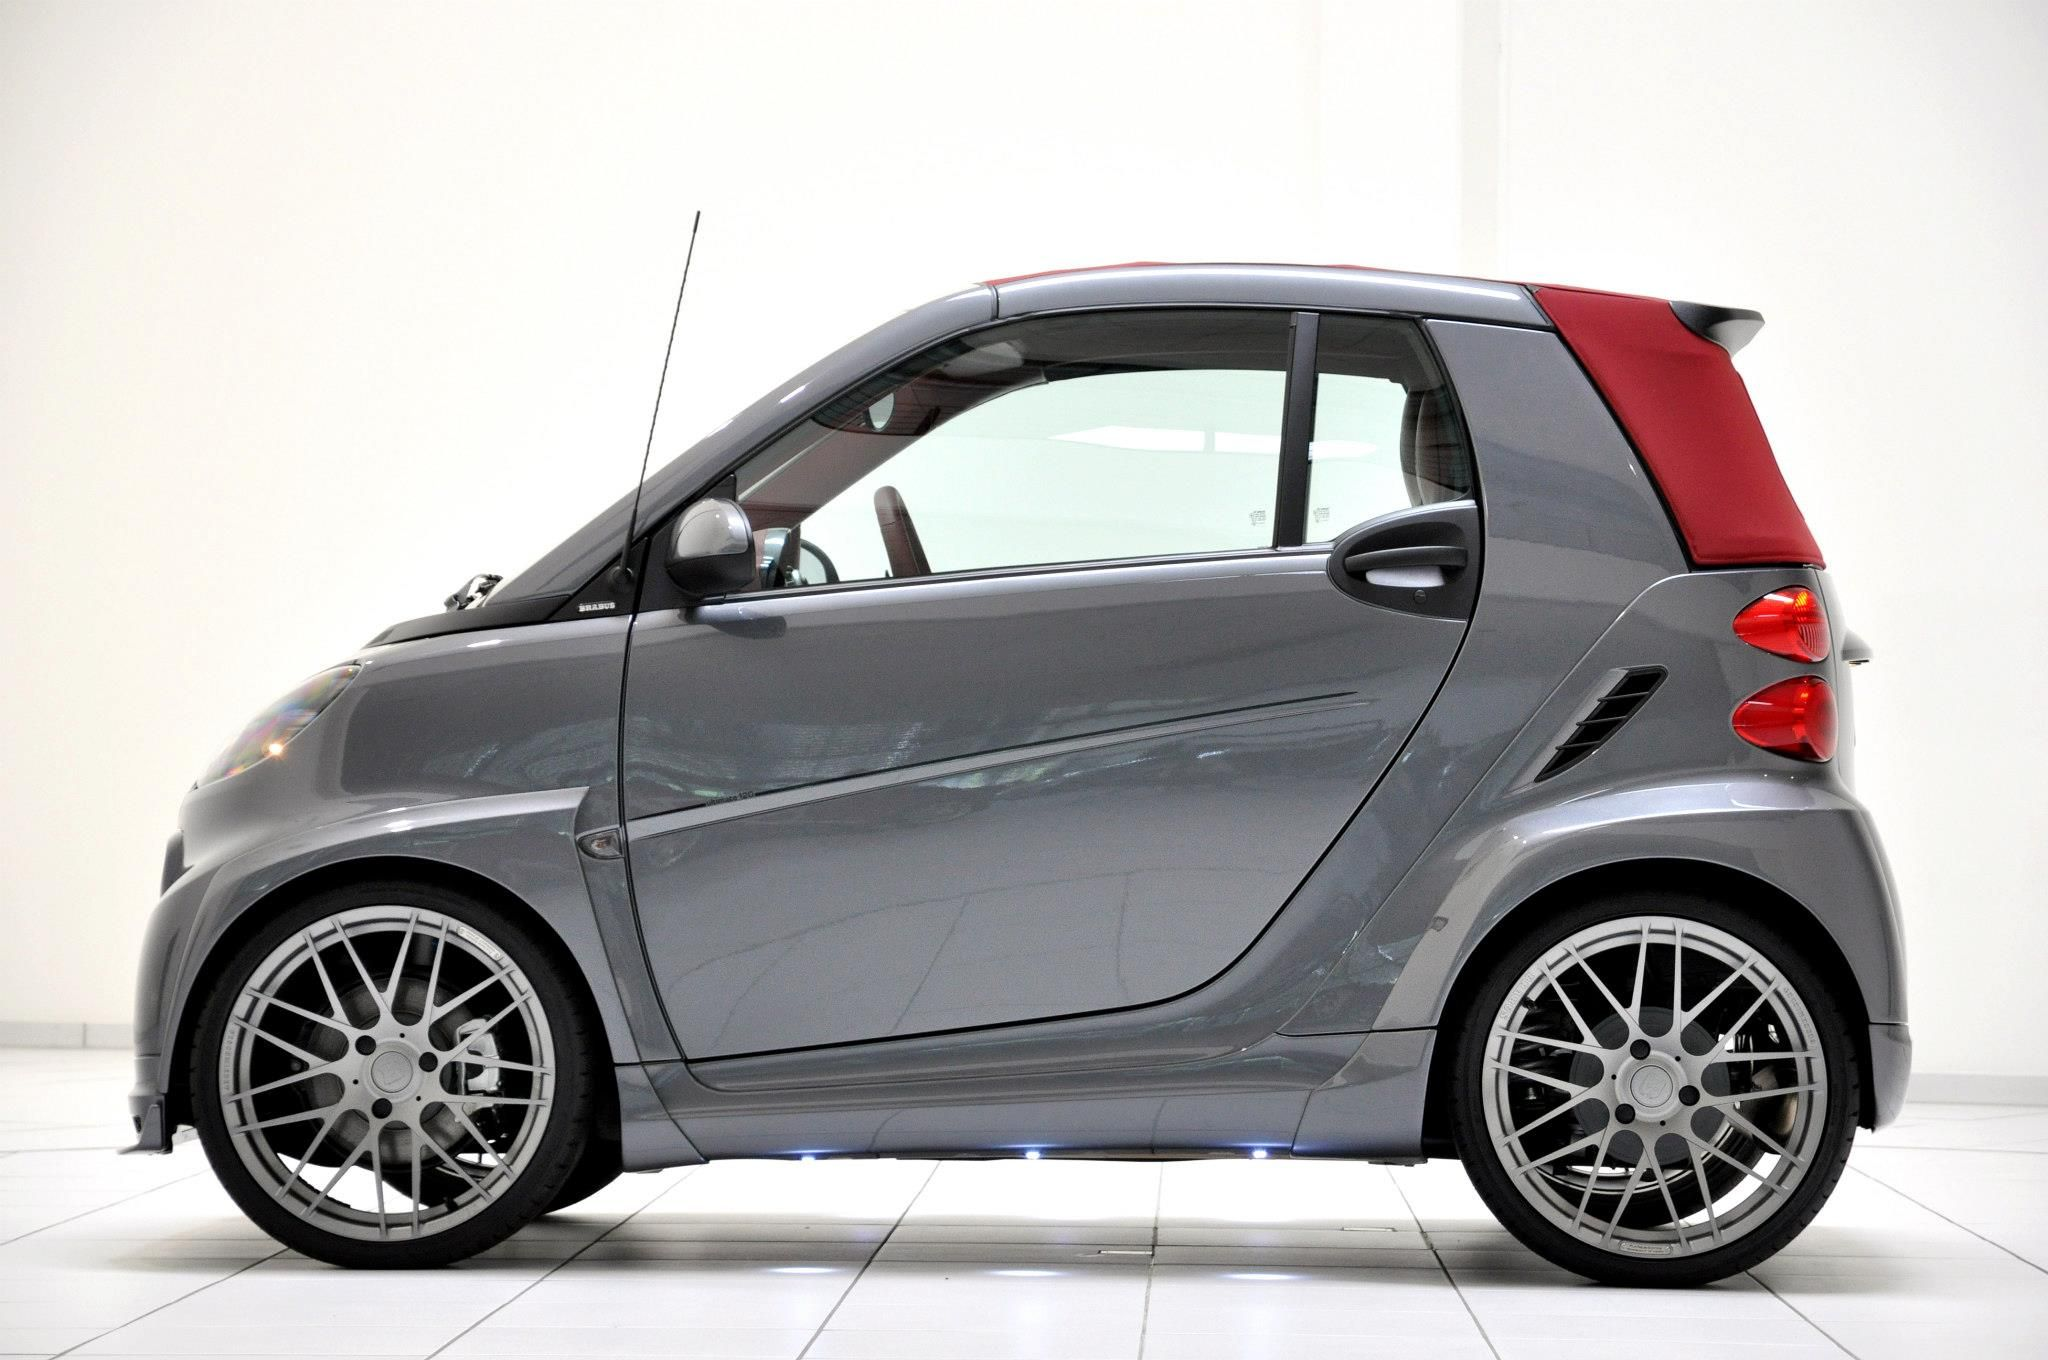 smart brabus ultimate 120 smart fortwo tuning. Black Bedroom Furniture Sets. Home Design Ideas